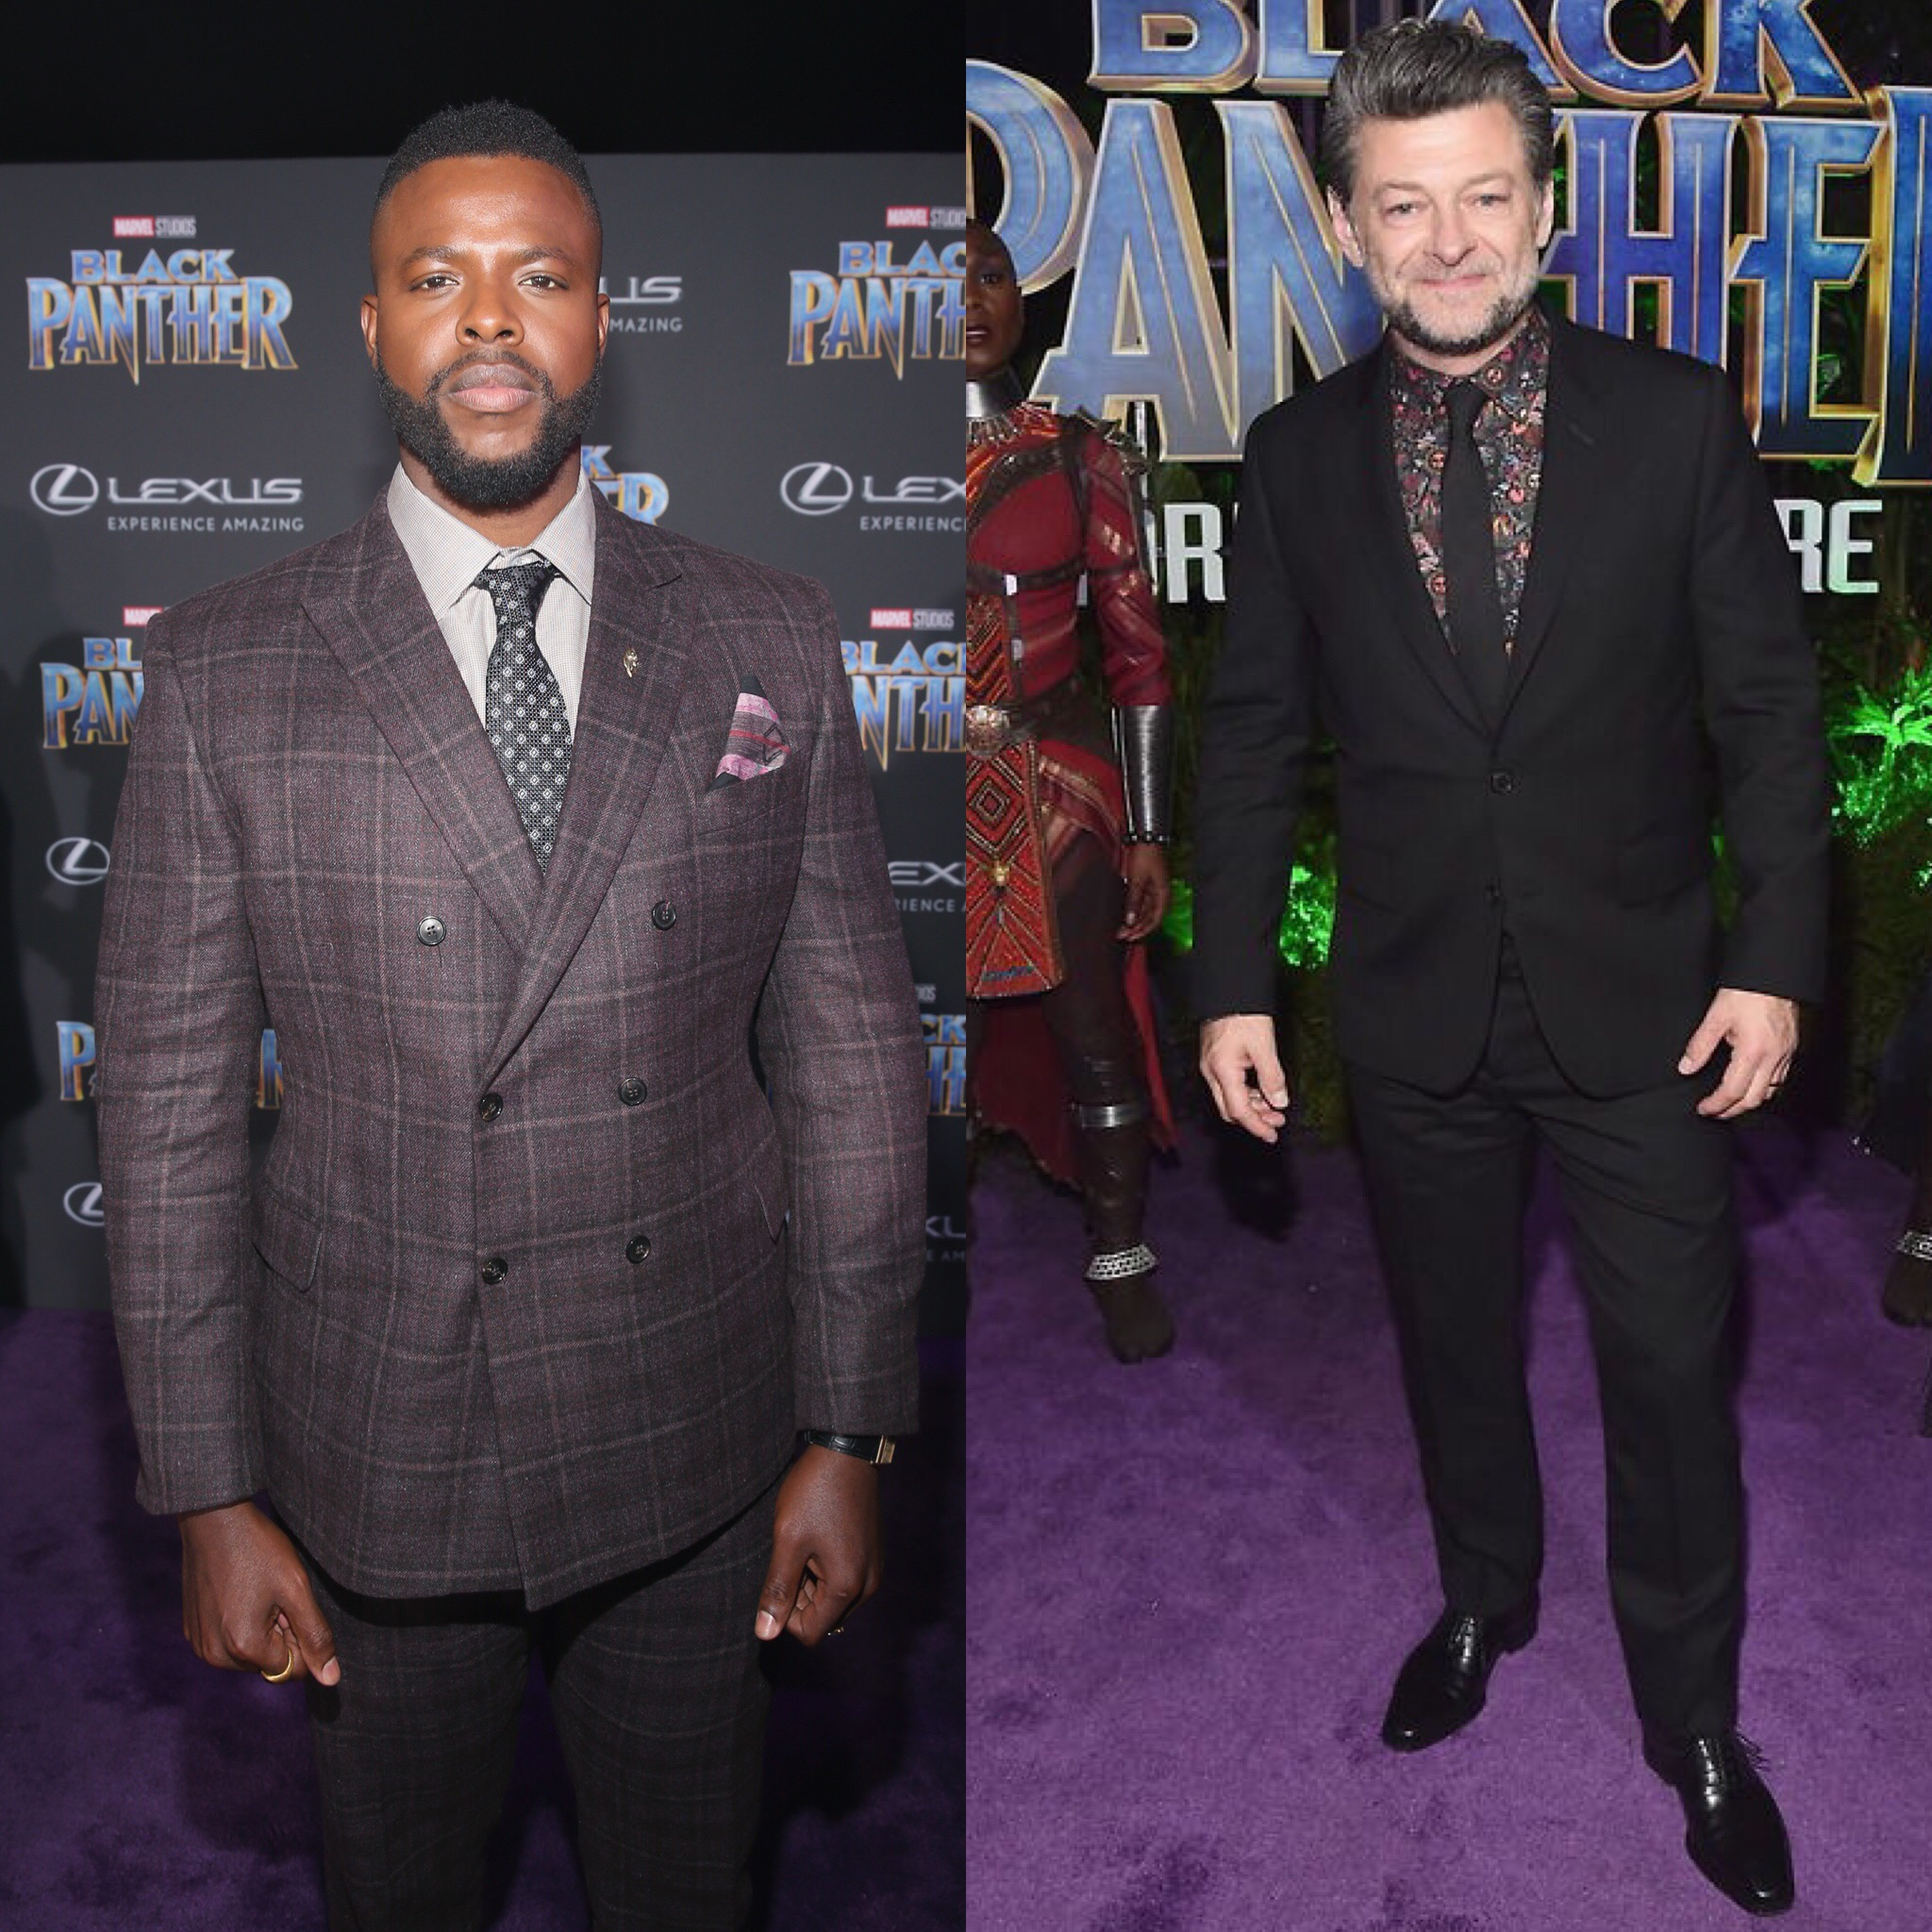 Round Table Discussion With Winston Duke & Andy Serkis From Black Panther